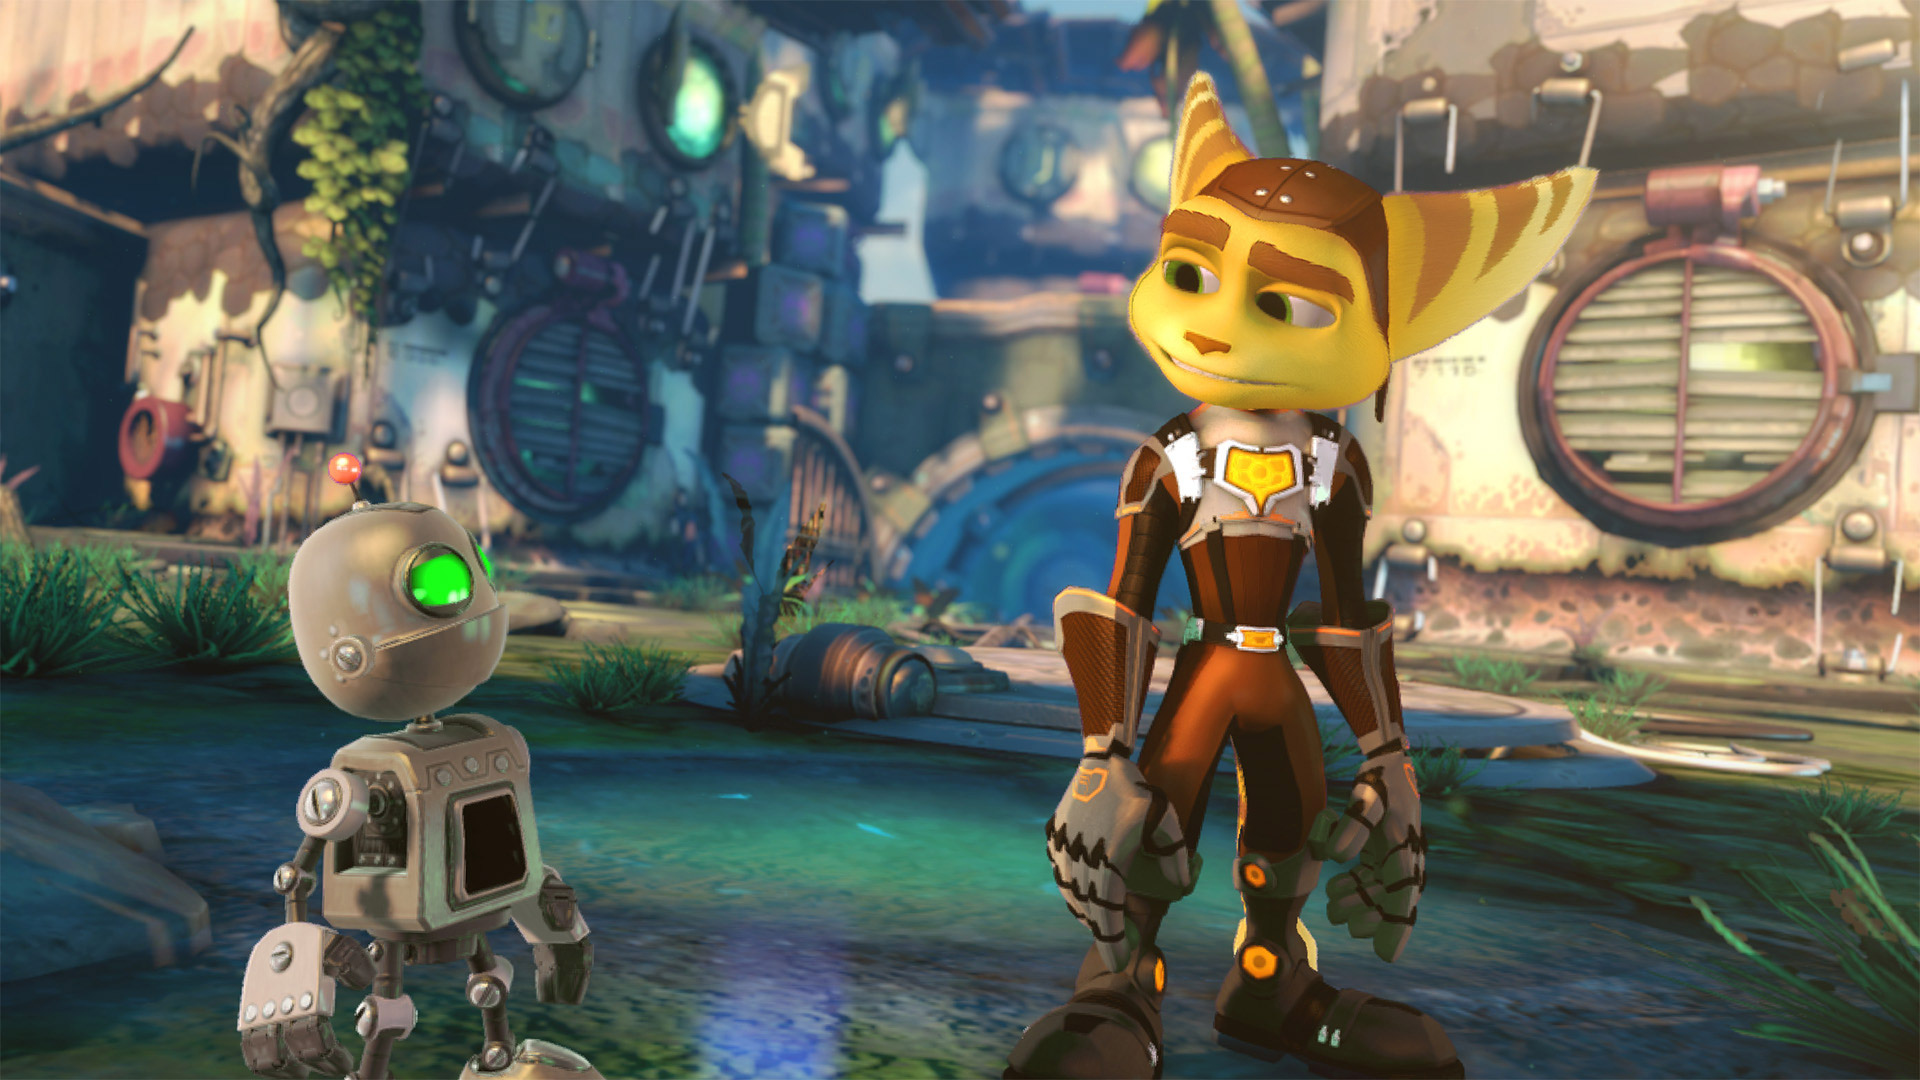 RC_Nexus_Ratchet_and_Clank